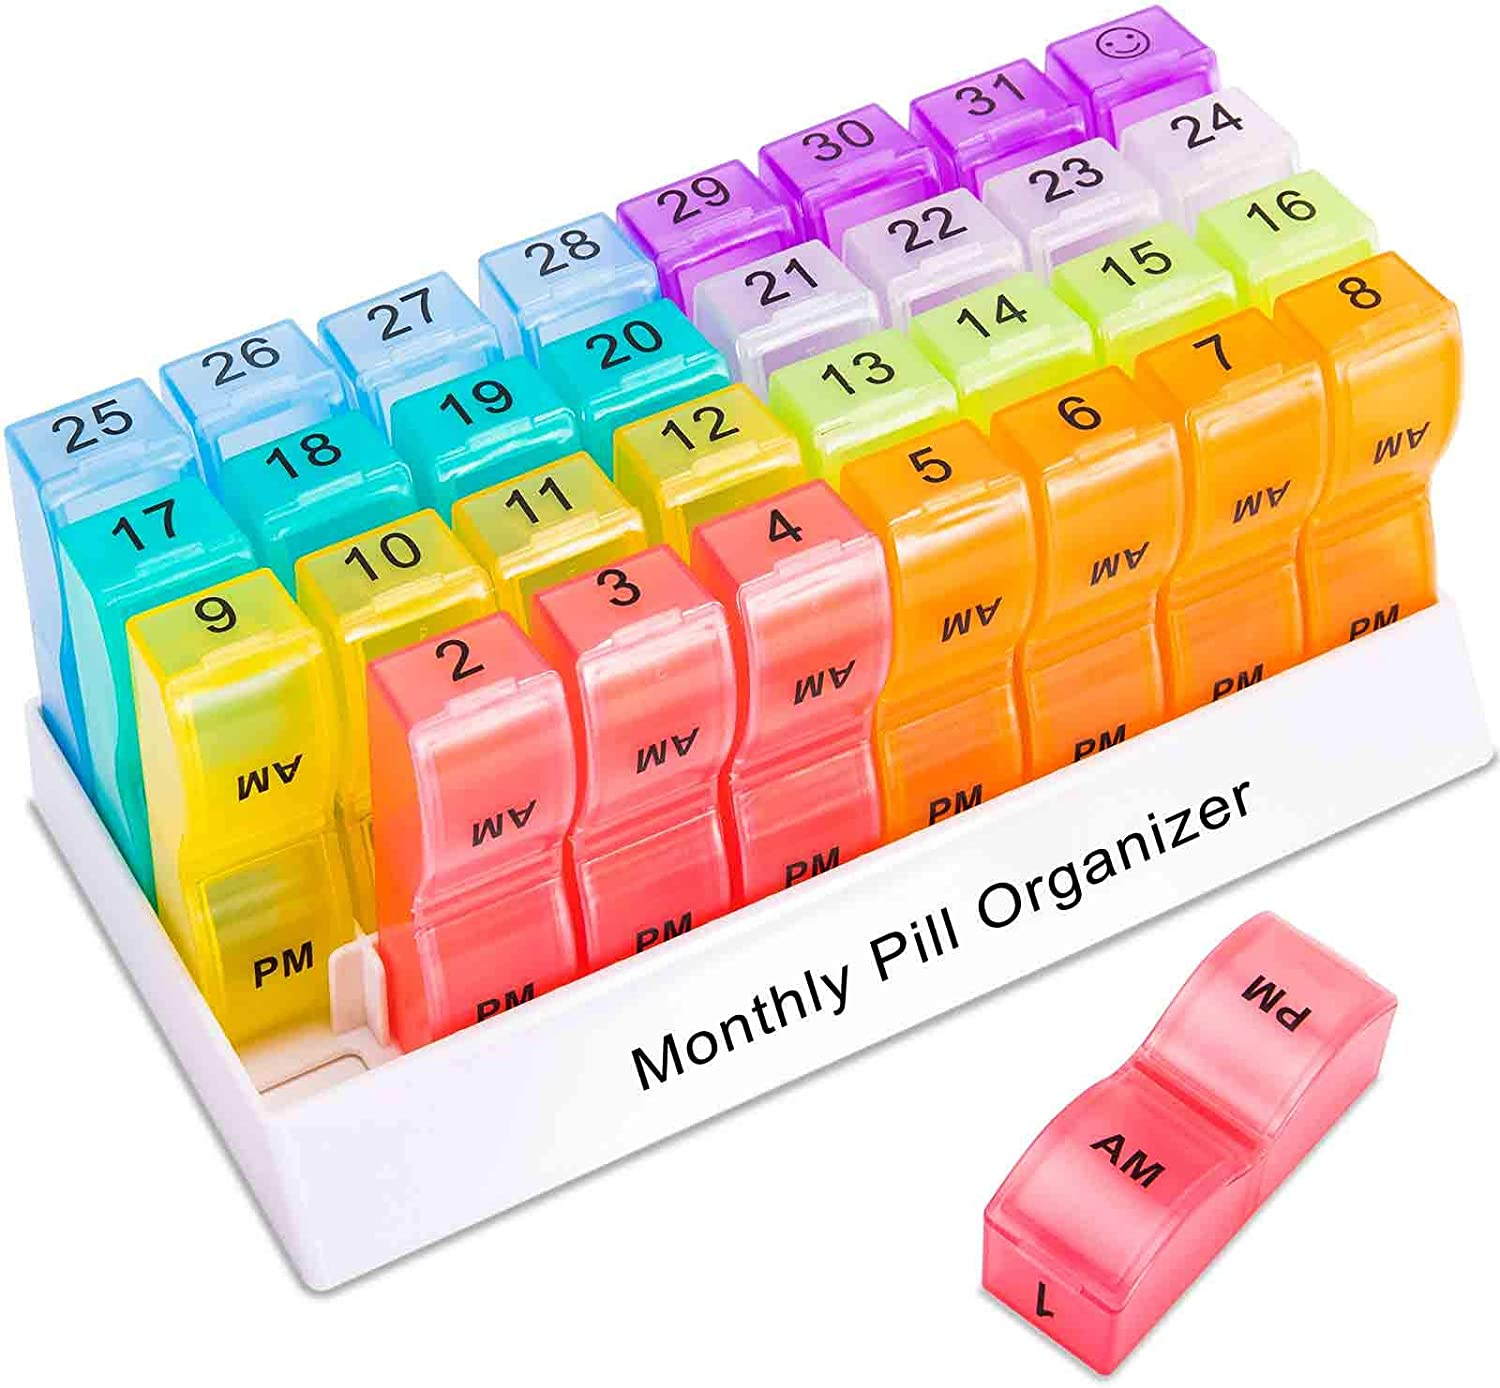 ASprink Monthly Pill Organizer 2 Times a Day, 31 Day Am Pm Pill Box Case, 1 Month 30-Day Medicine Dispenser, Easy-Open/Fill Daily Medications, Vitamins Once a Month (Small Compartment): Health & Personal Care